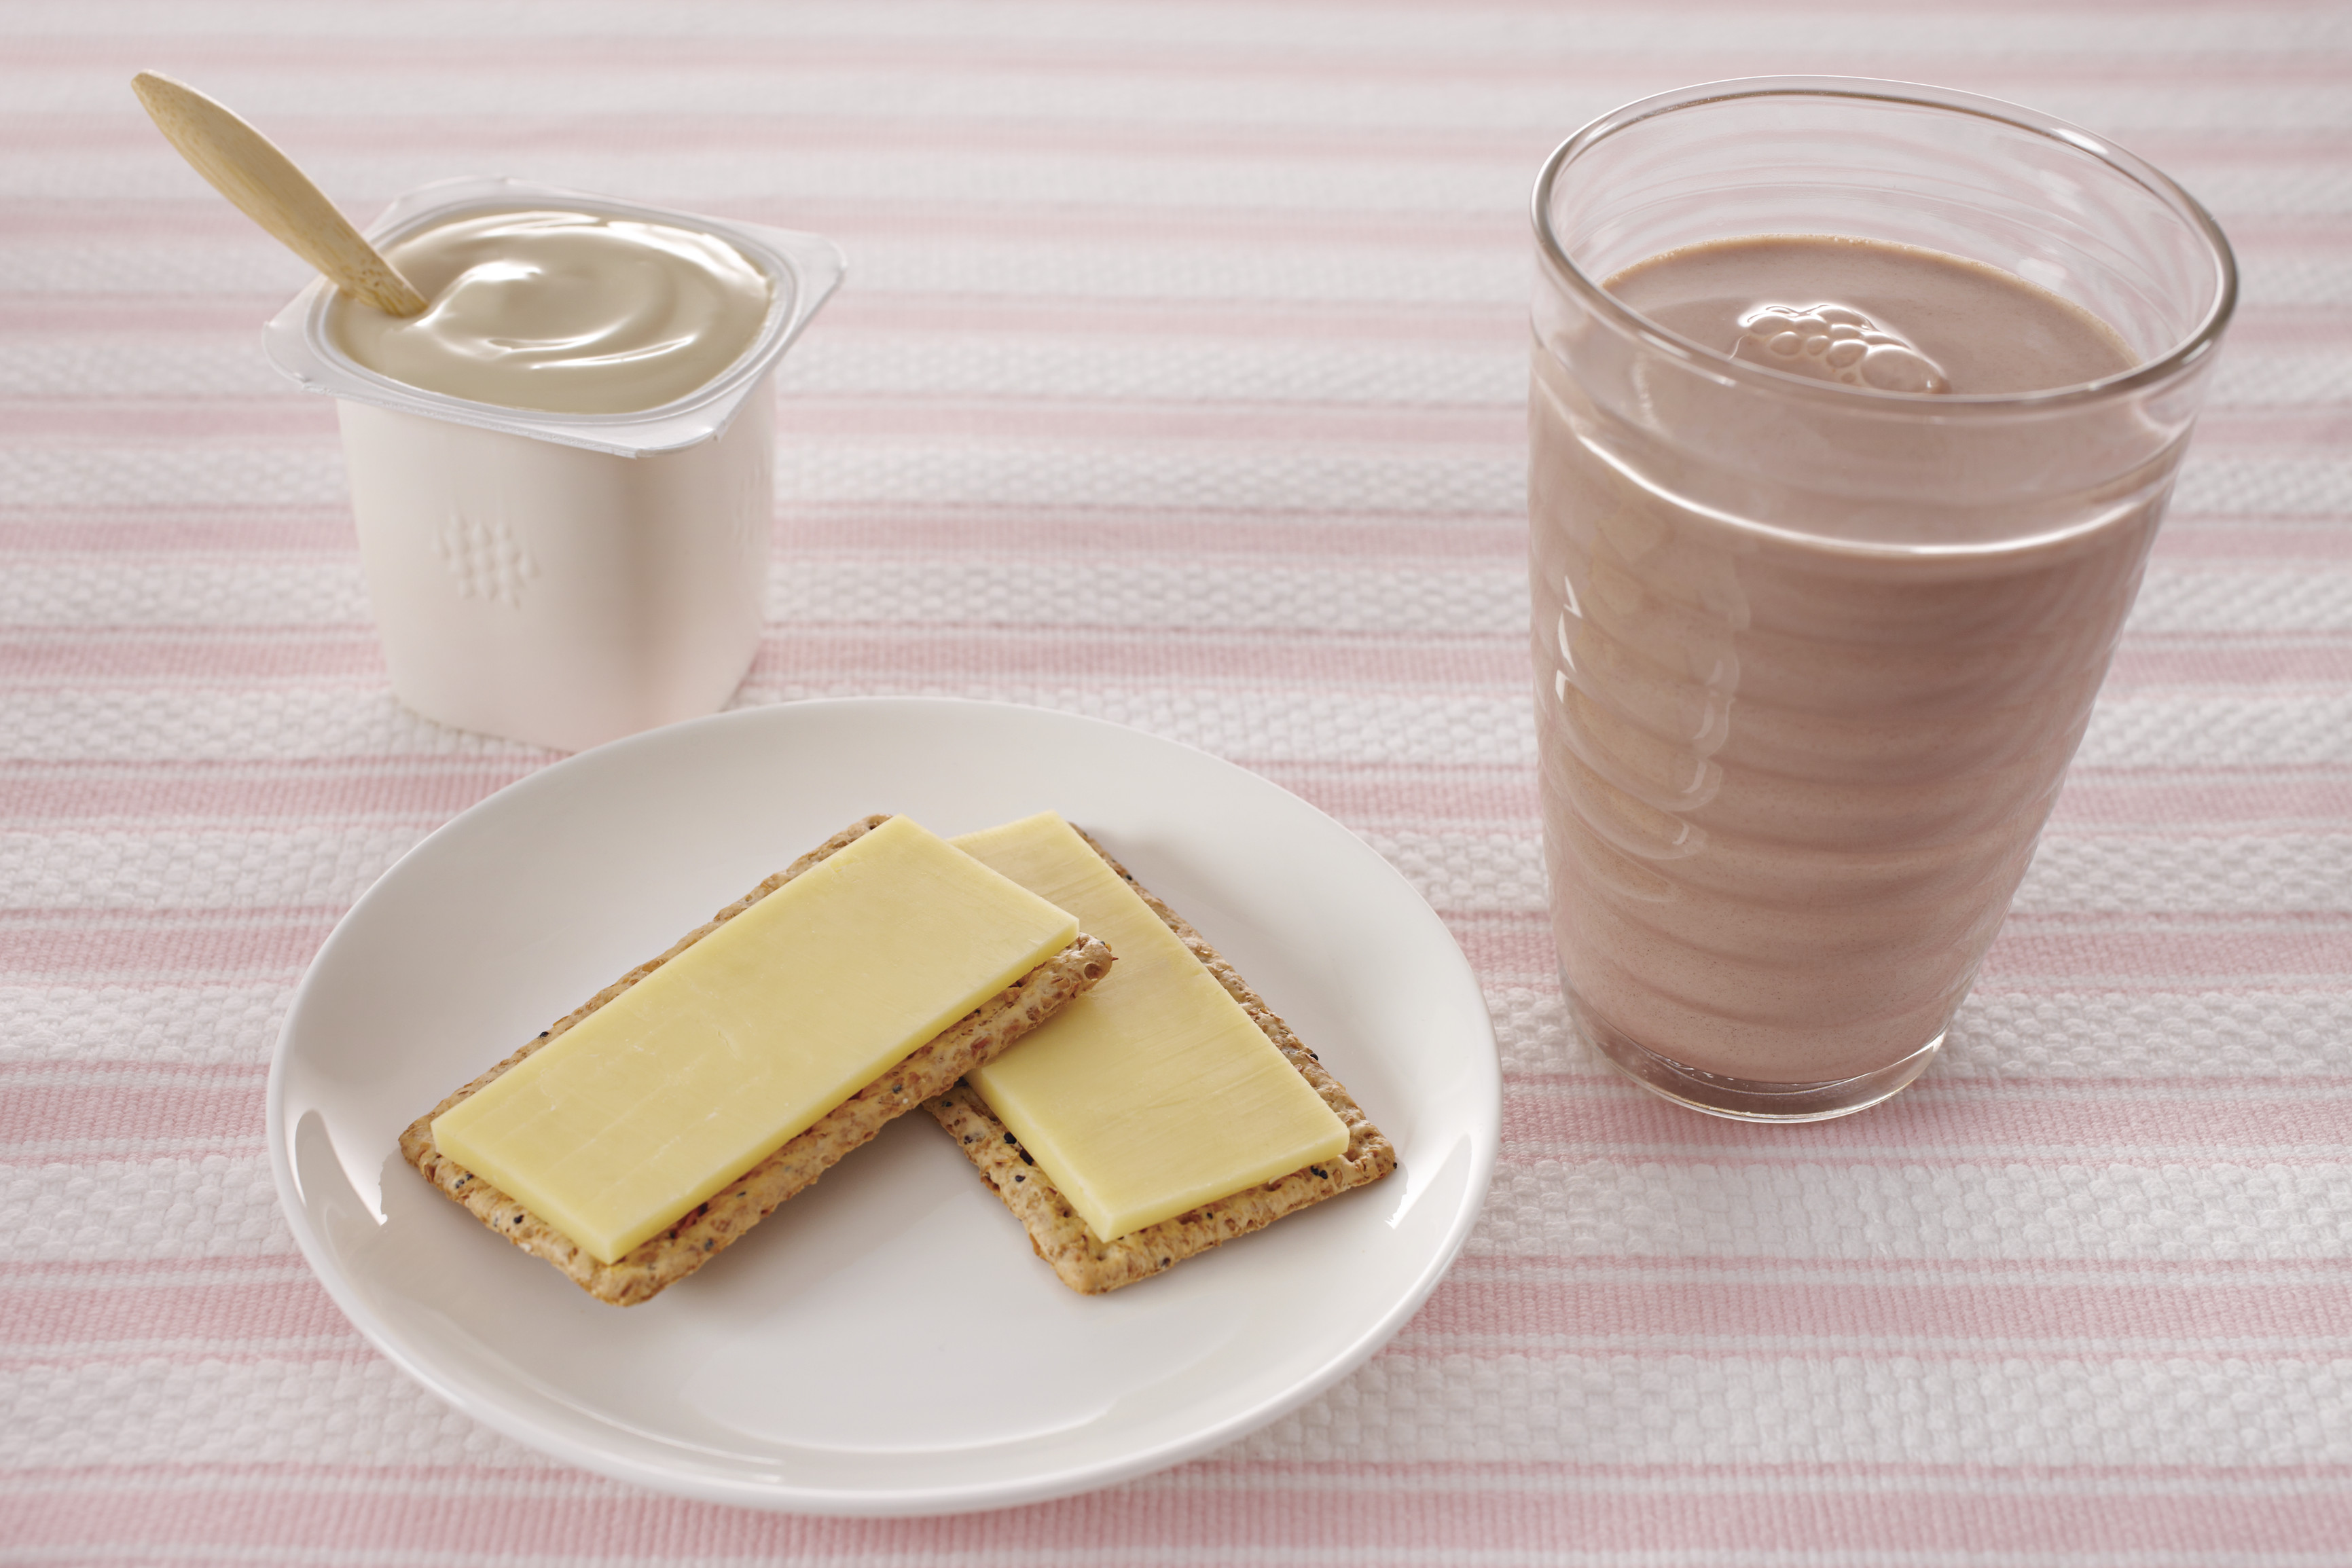 Plate of cheese and crackers, glass of chocolate milk and tub of plain yoghurt